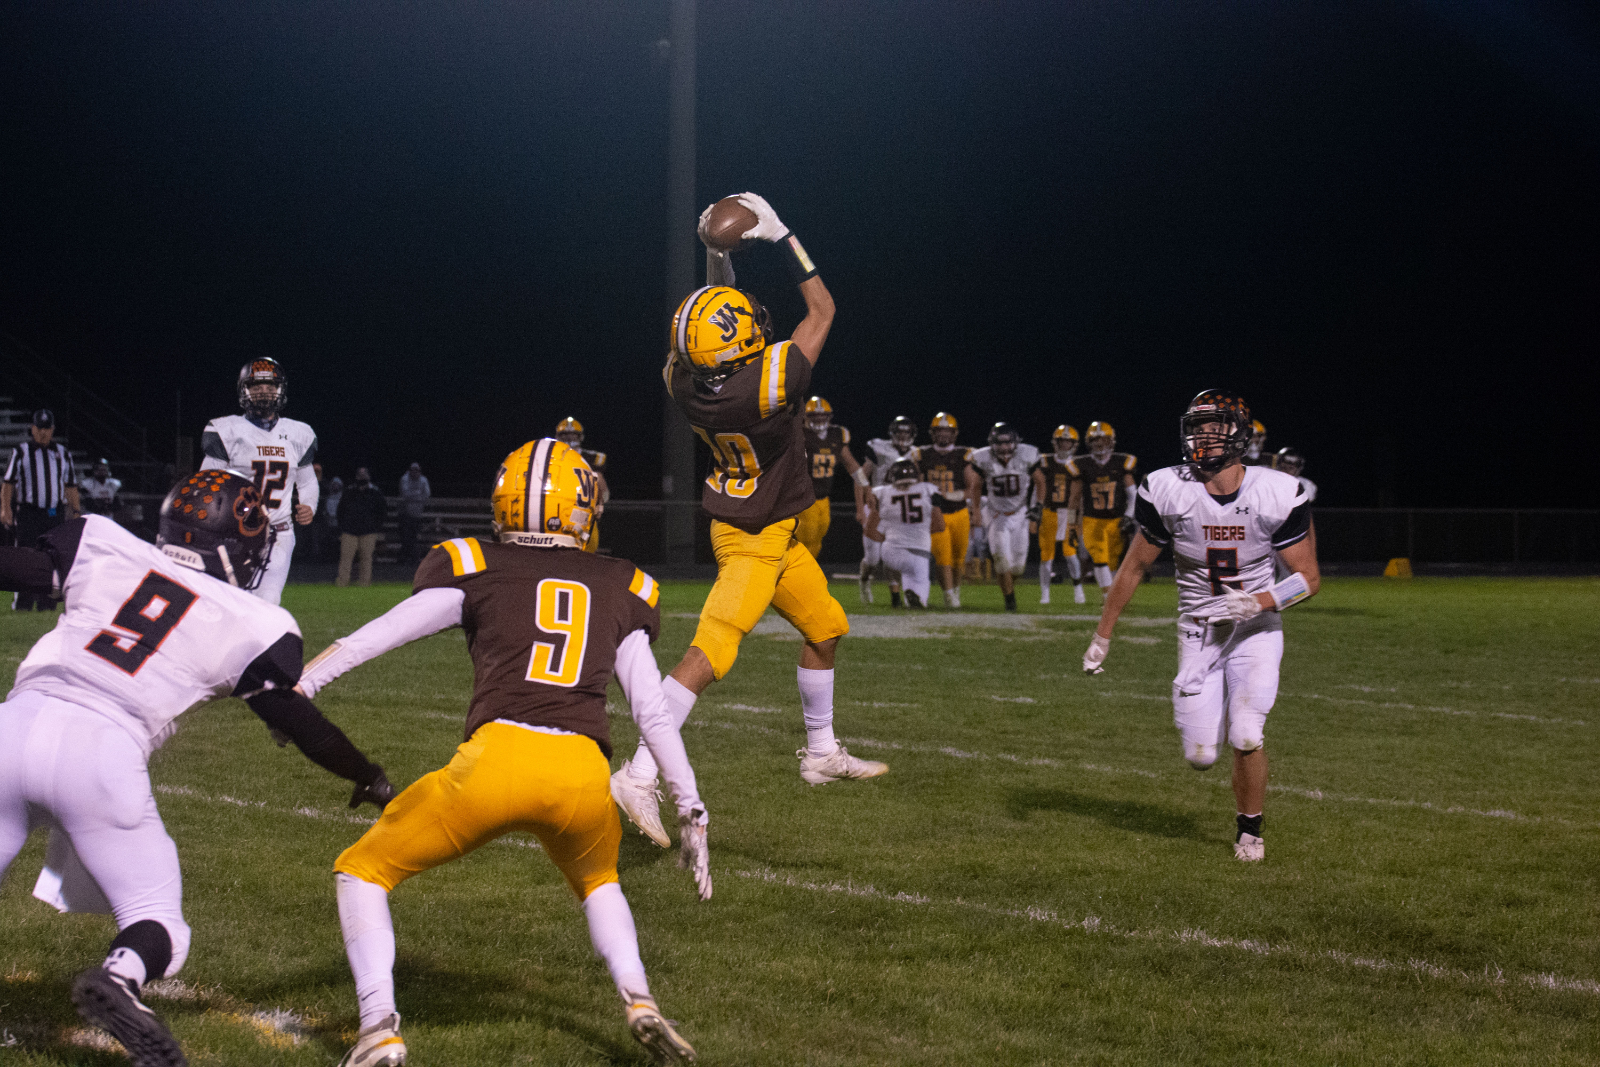 HS Football: WJ vs West Liberty 2020